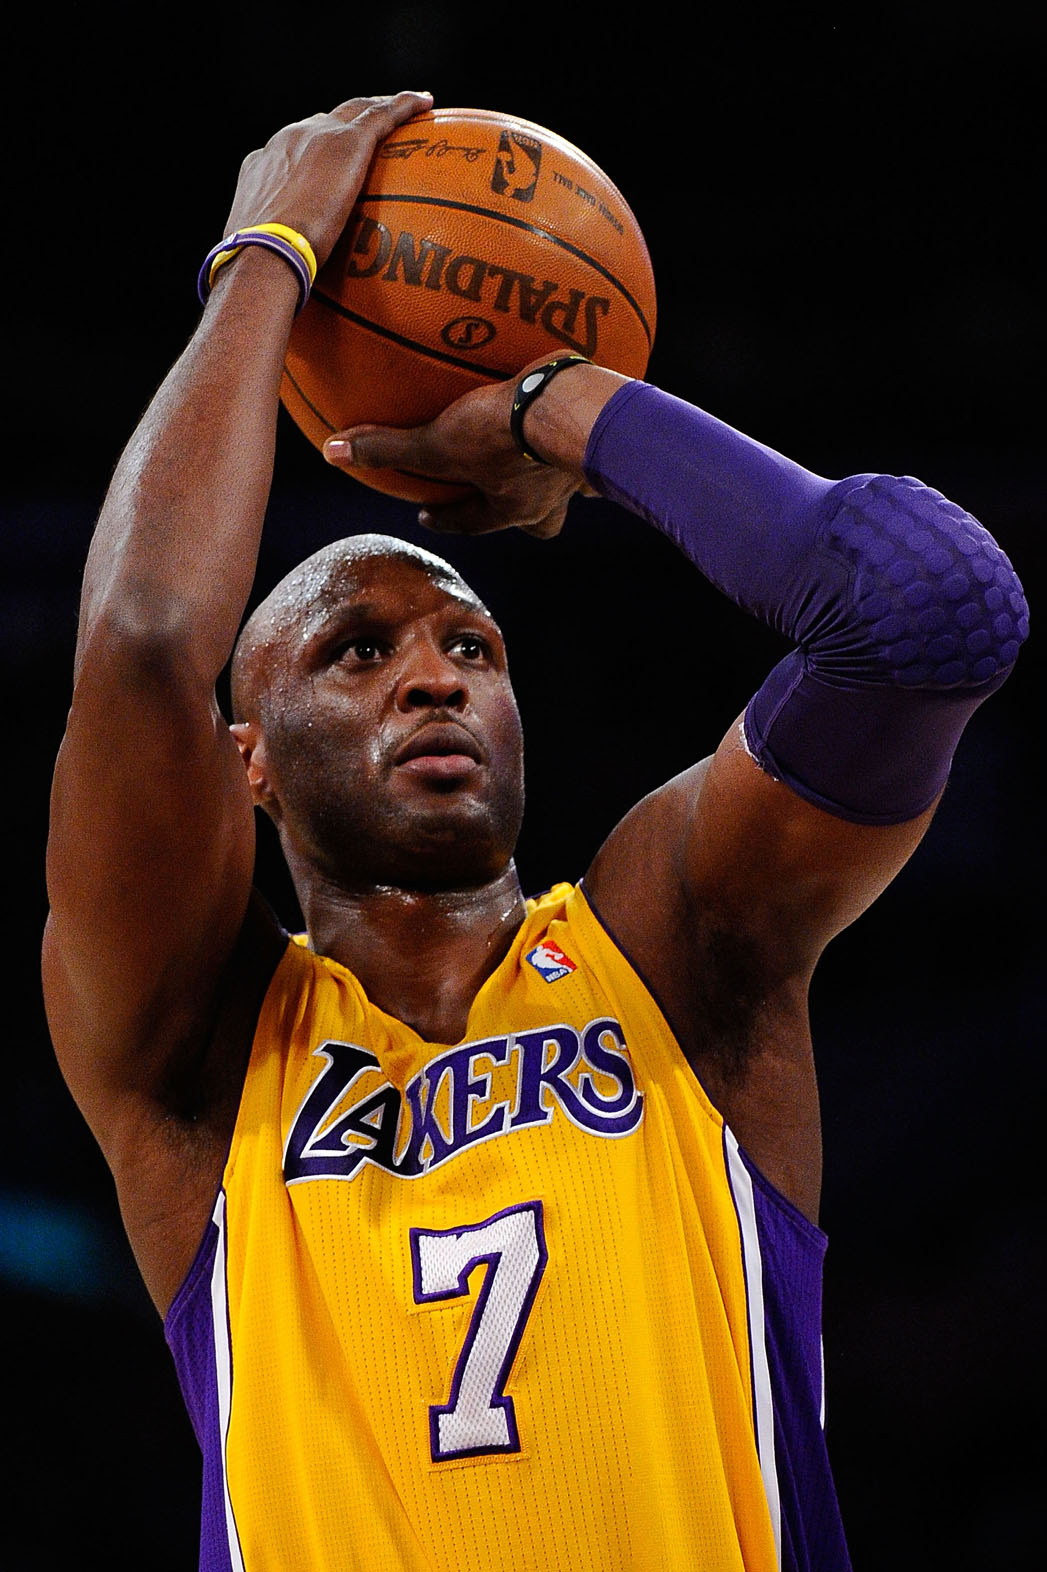 Lamar Odom Lakers - P 2013